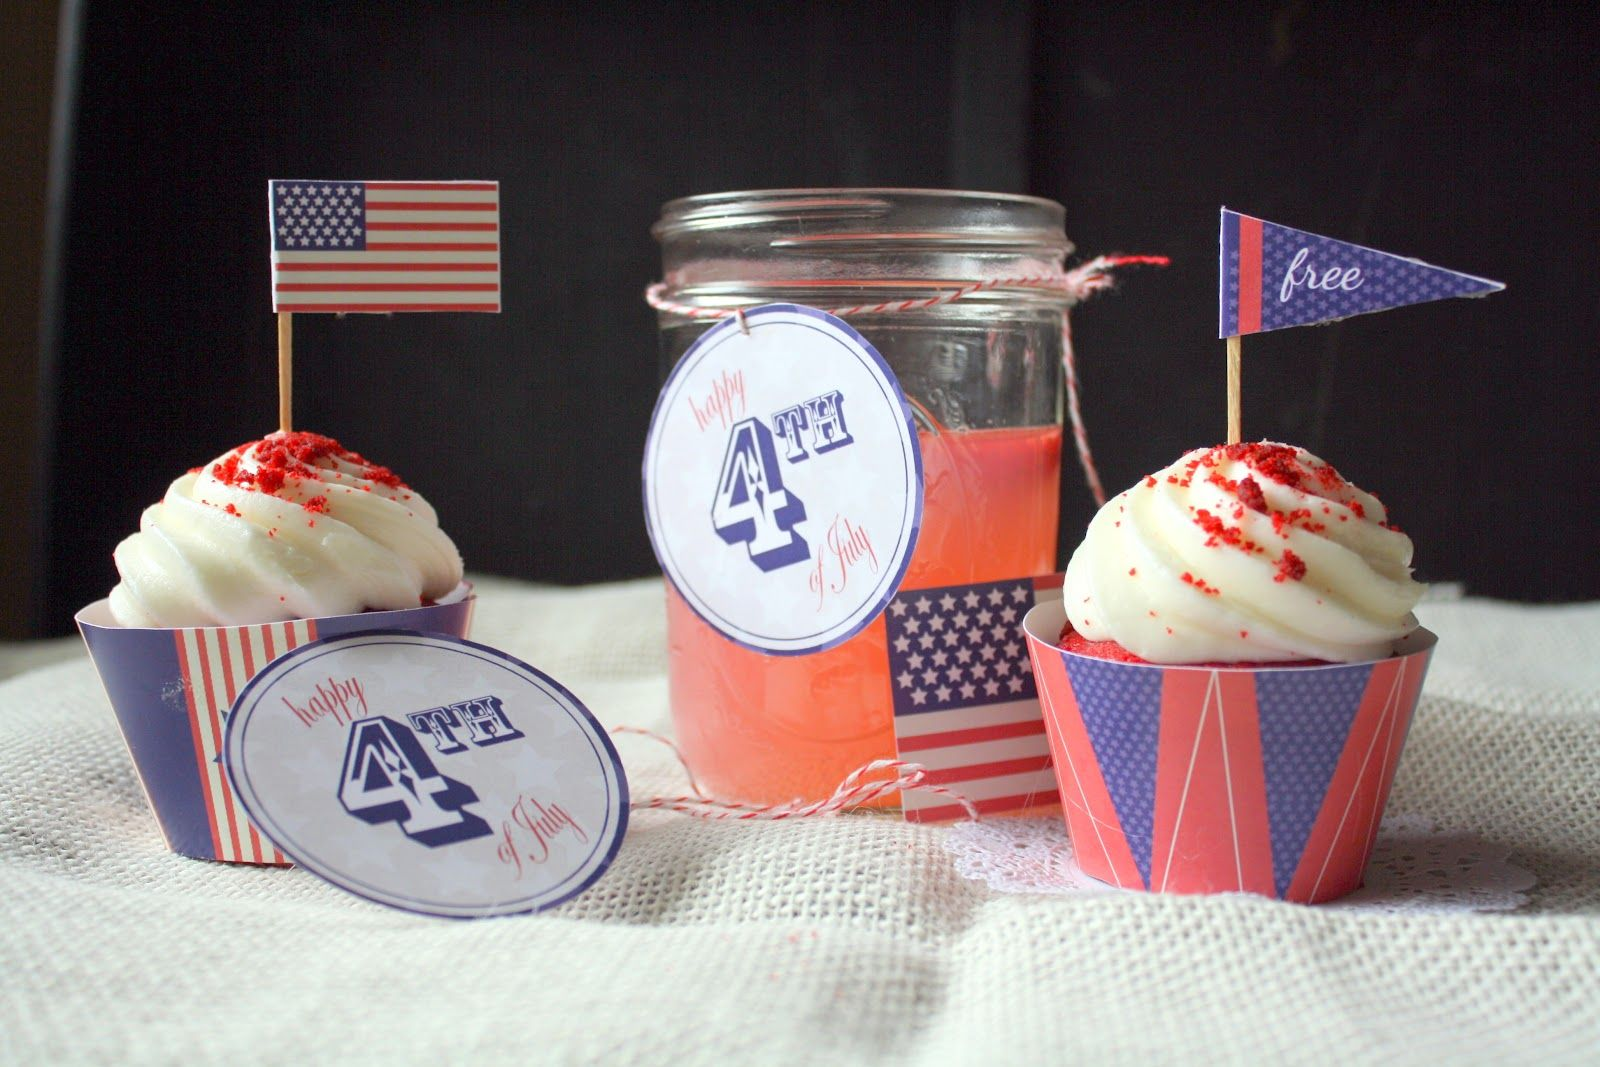 {the letter 4} 4th of July Party FREE Printables! Party invitations, cupcake liners, cupcake toppers and more! #4thofJuly #party